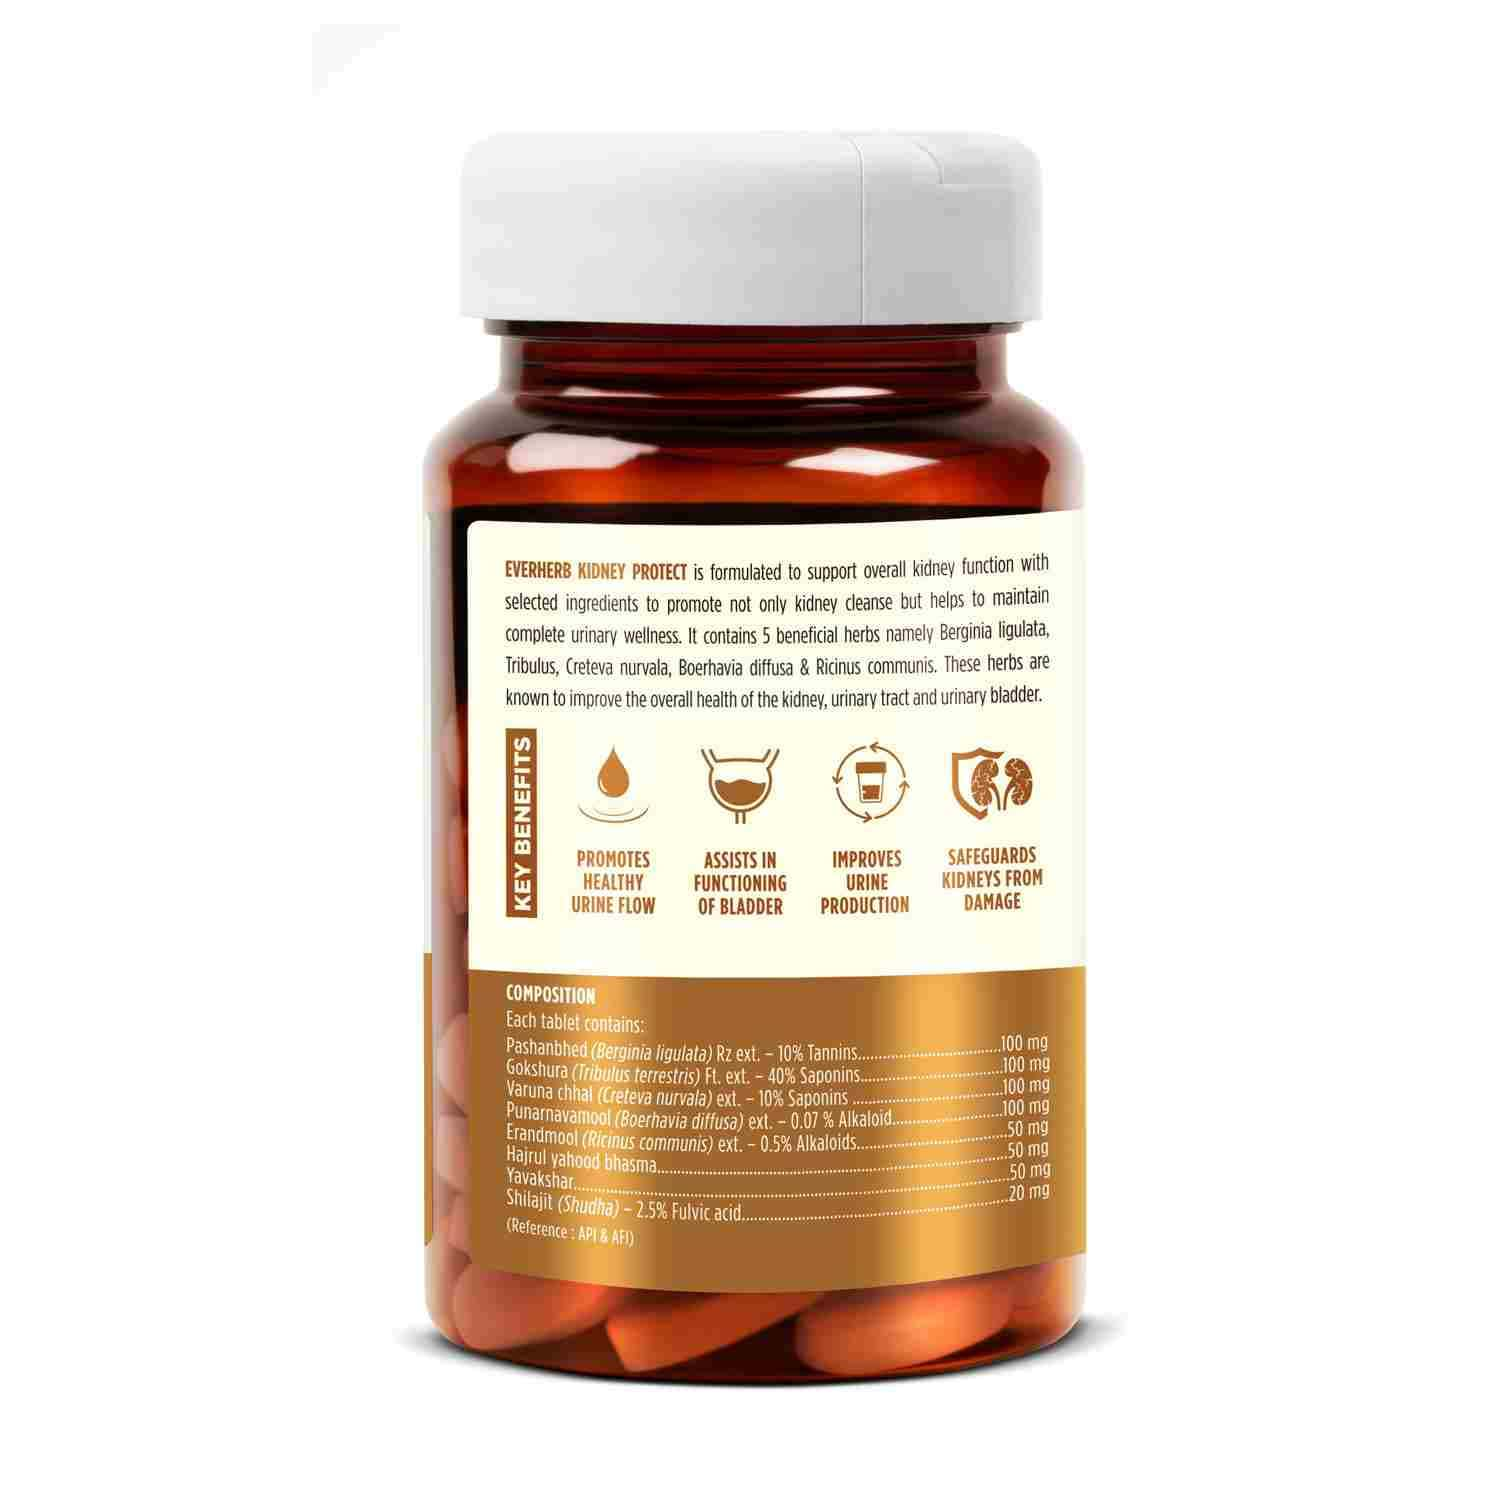 Everherb Kidney Protect -blend Of 8 Natural Powerful Herbs - Promotes Healthy Urine Flow - 60 Tablets